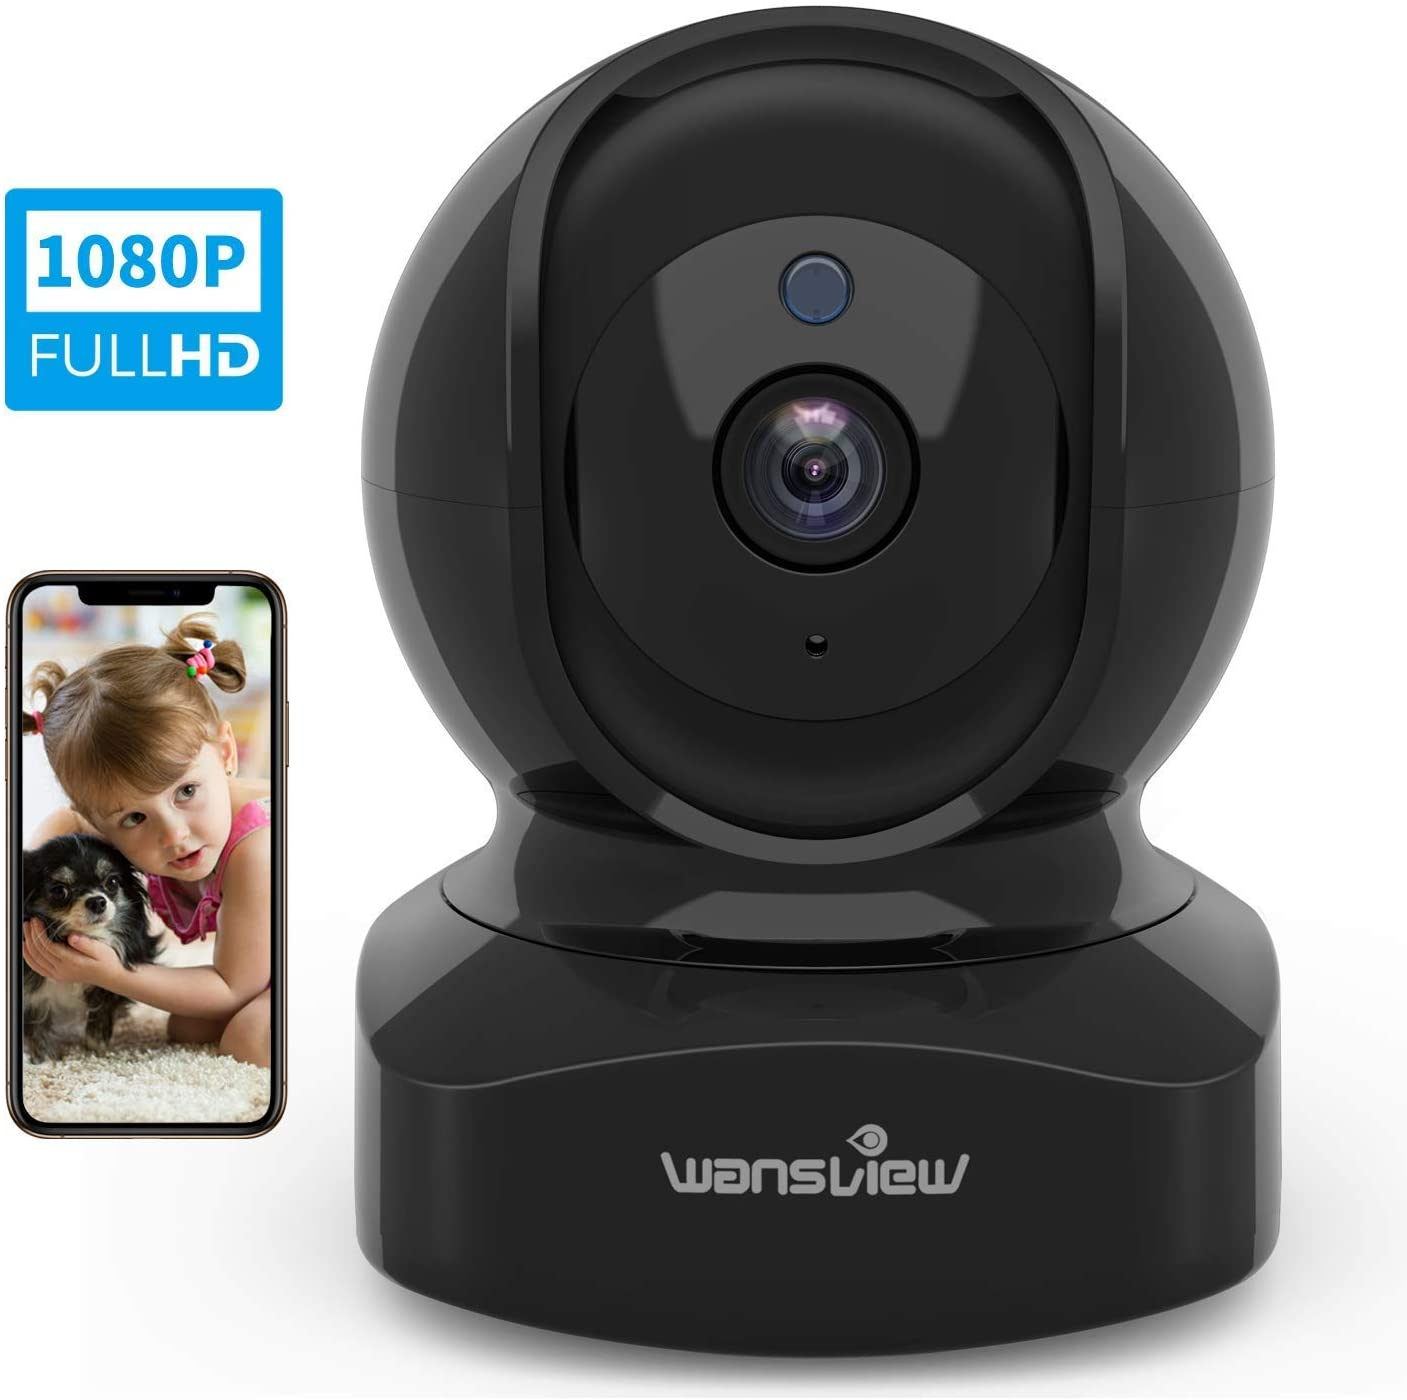 Wansview Wireless Security Camera Product Image